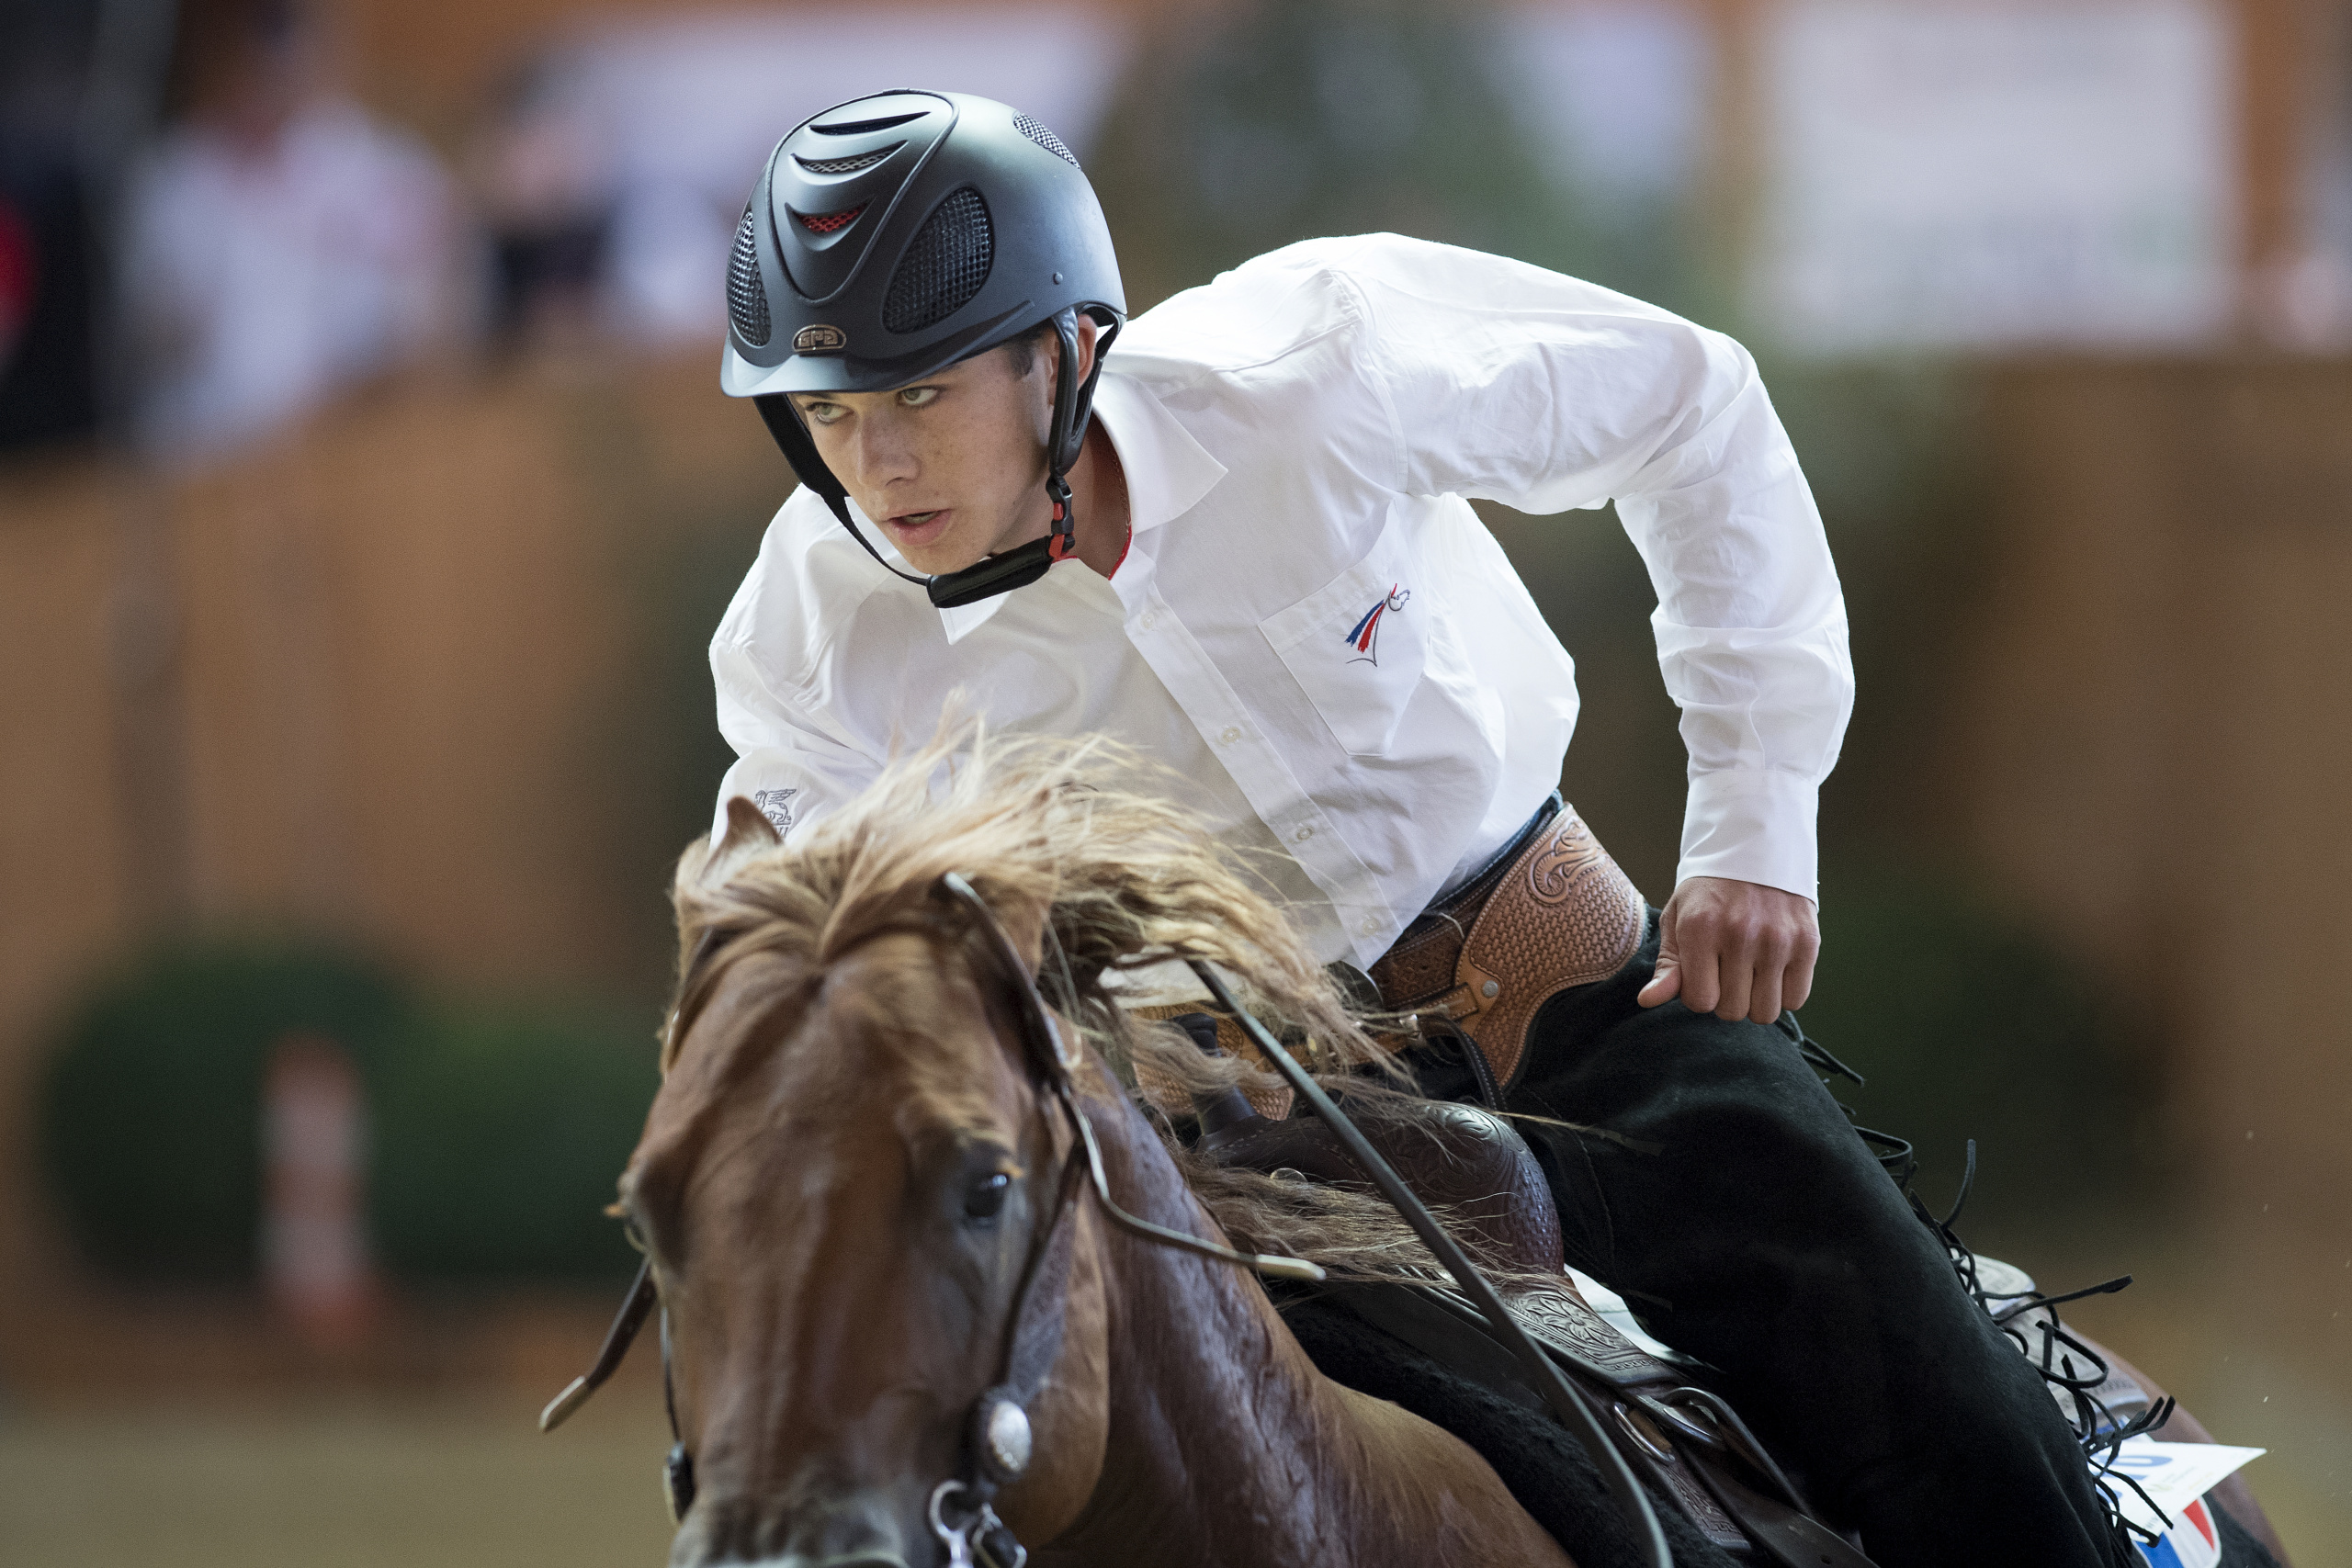 SVAG FEI World Reining Junior Riders Individual Final Competition. FRA Axel PESEK Horse UNCLE SPARKY